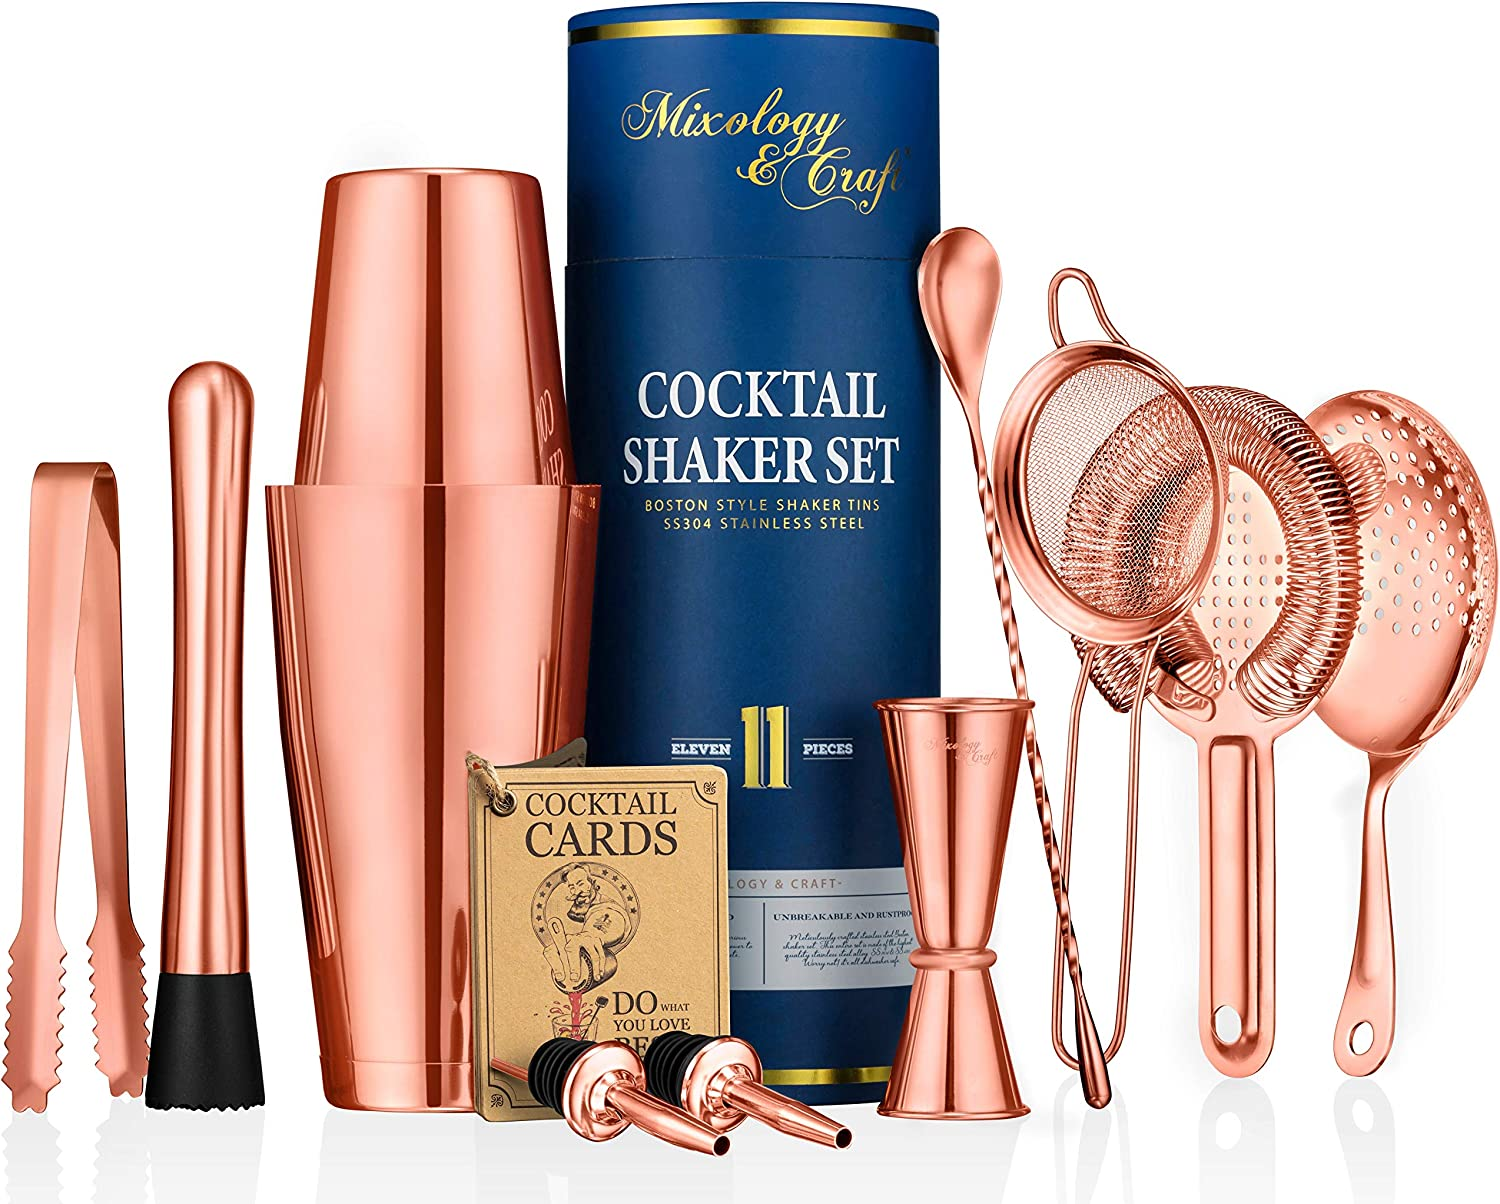 11-piece Cocktail Shaker Set | Mixology Bartender Kit with Weighted Boston Shaker and Bar Tools Set For Home or Professional Bartending | Best Cocktail Set for Awesome Drink Mixing Experience (Copper)